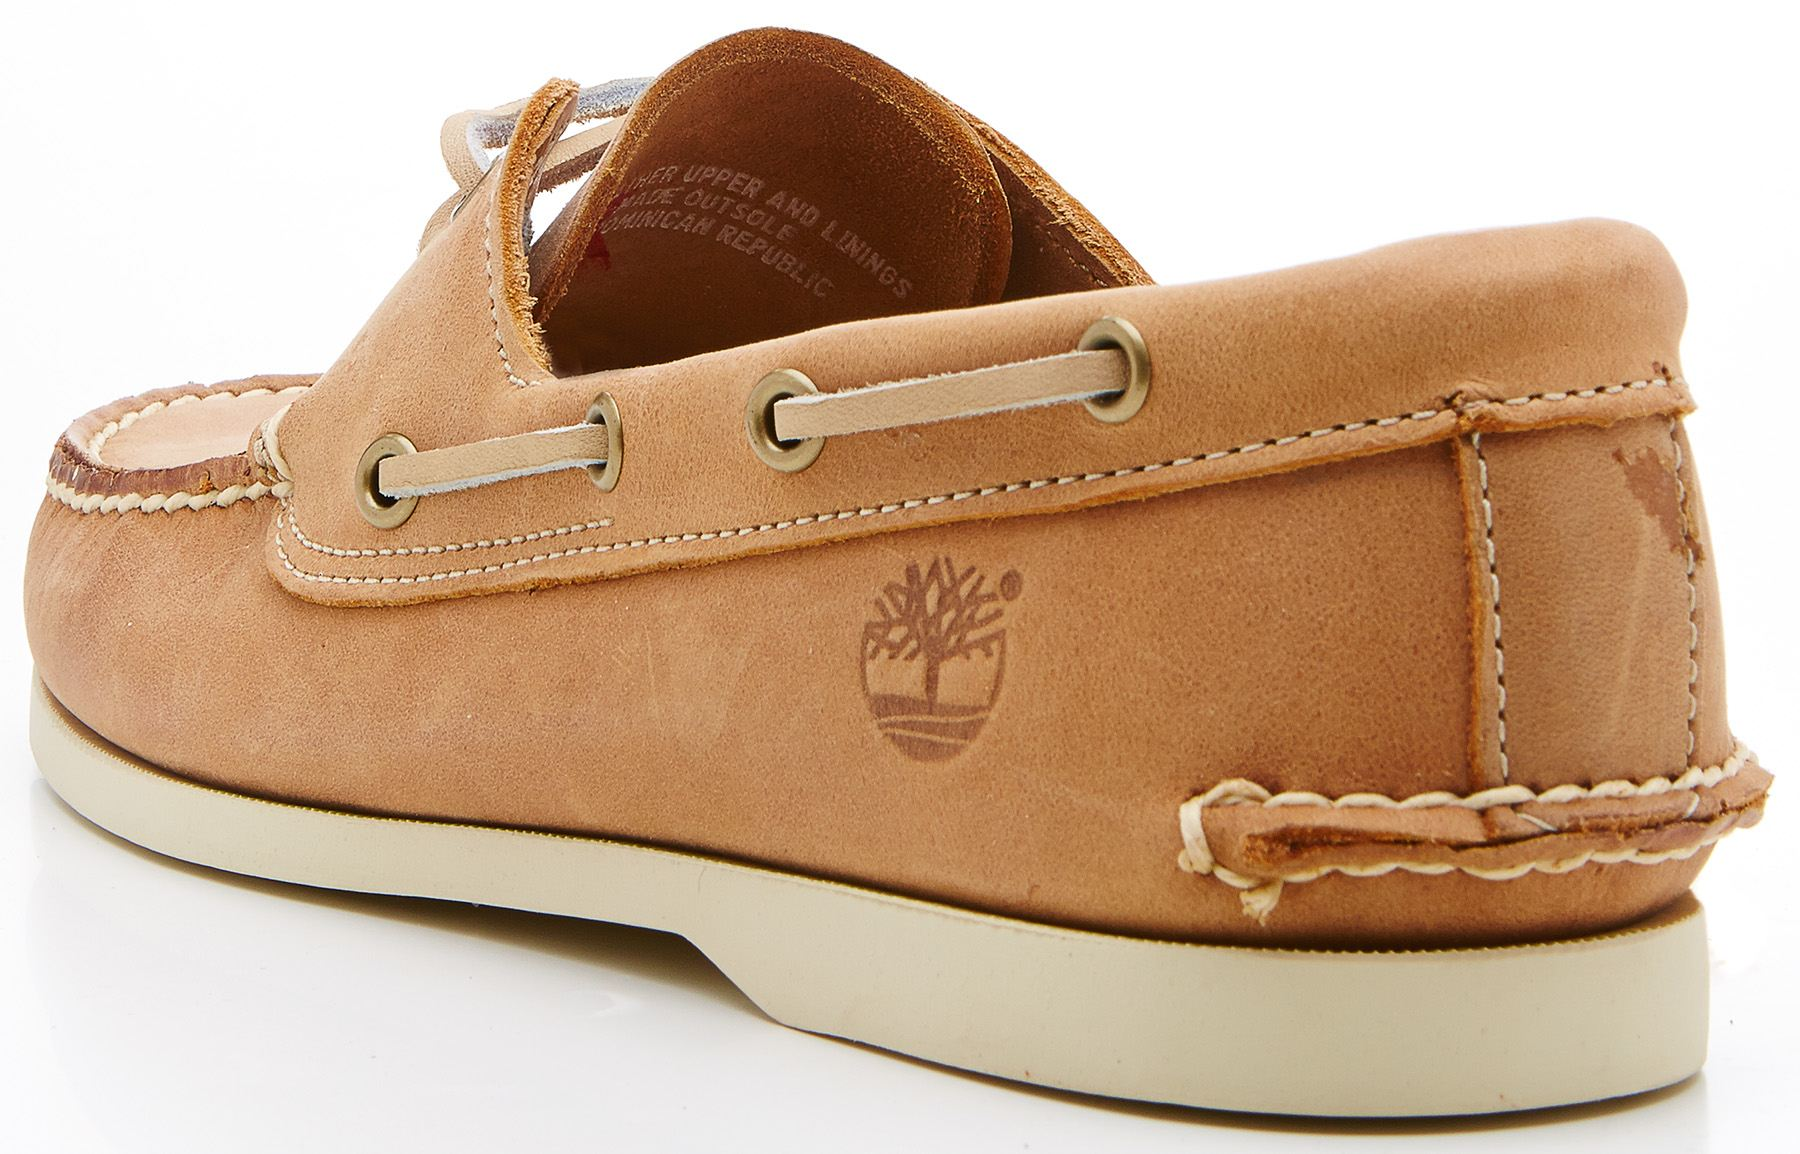 timberland boat shoes light brown